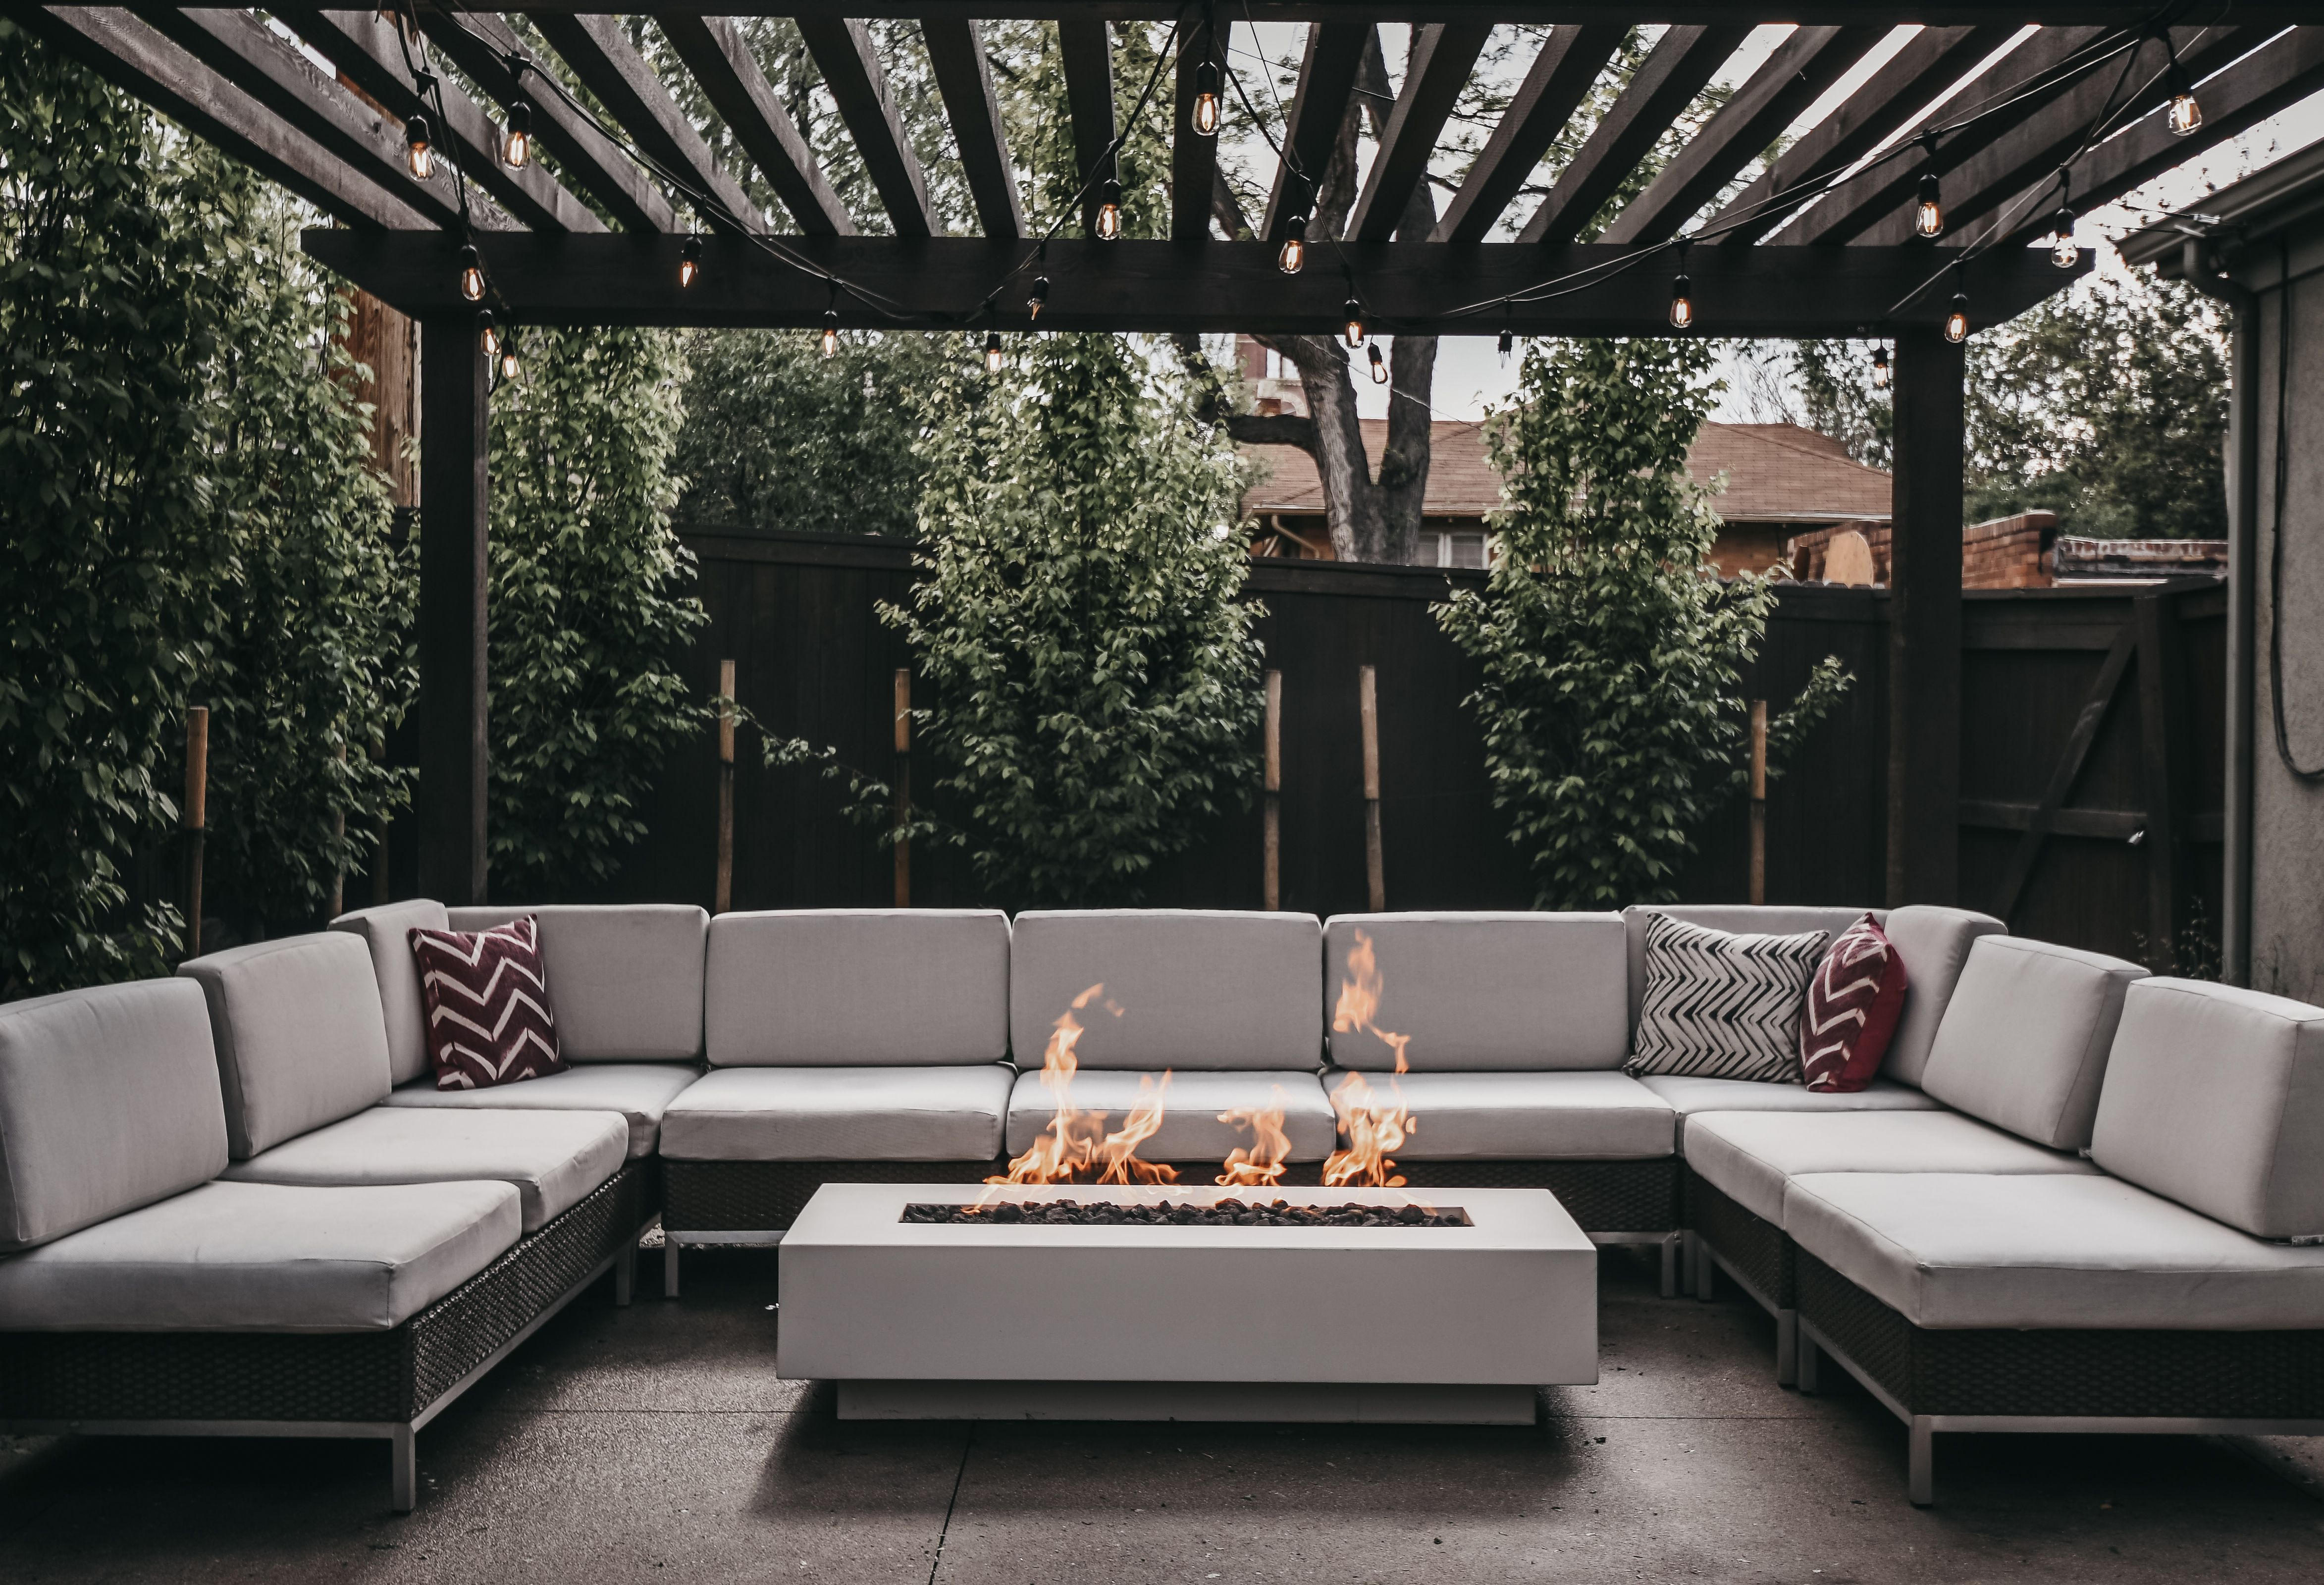 The Hearth Has Always Been A Common Gathering Place For Families A Place To Share Stories Break Bre Modern Outdoor Firepit Backyard Furniture Luxury Fire Pit Modern outdoor fire pit table